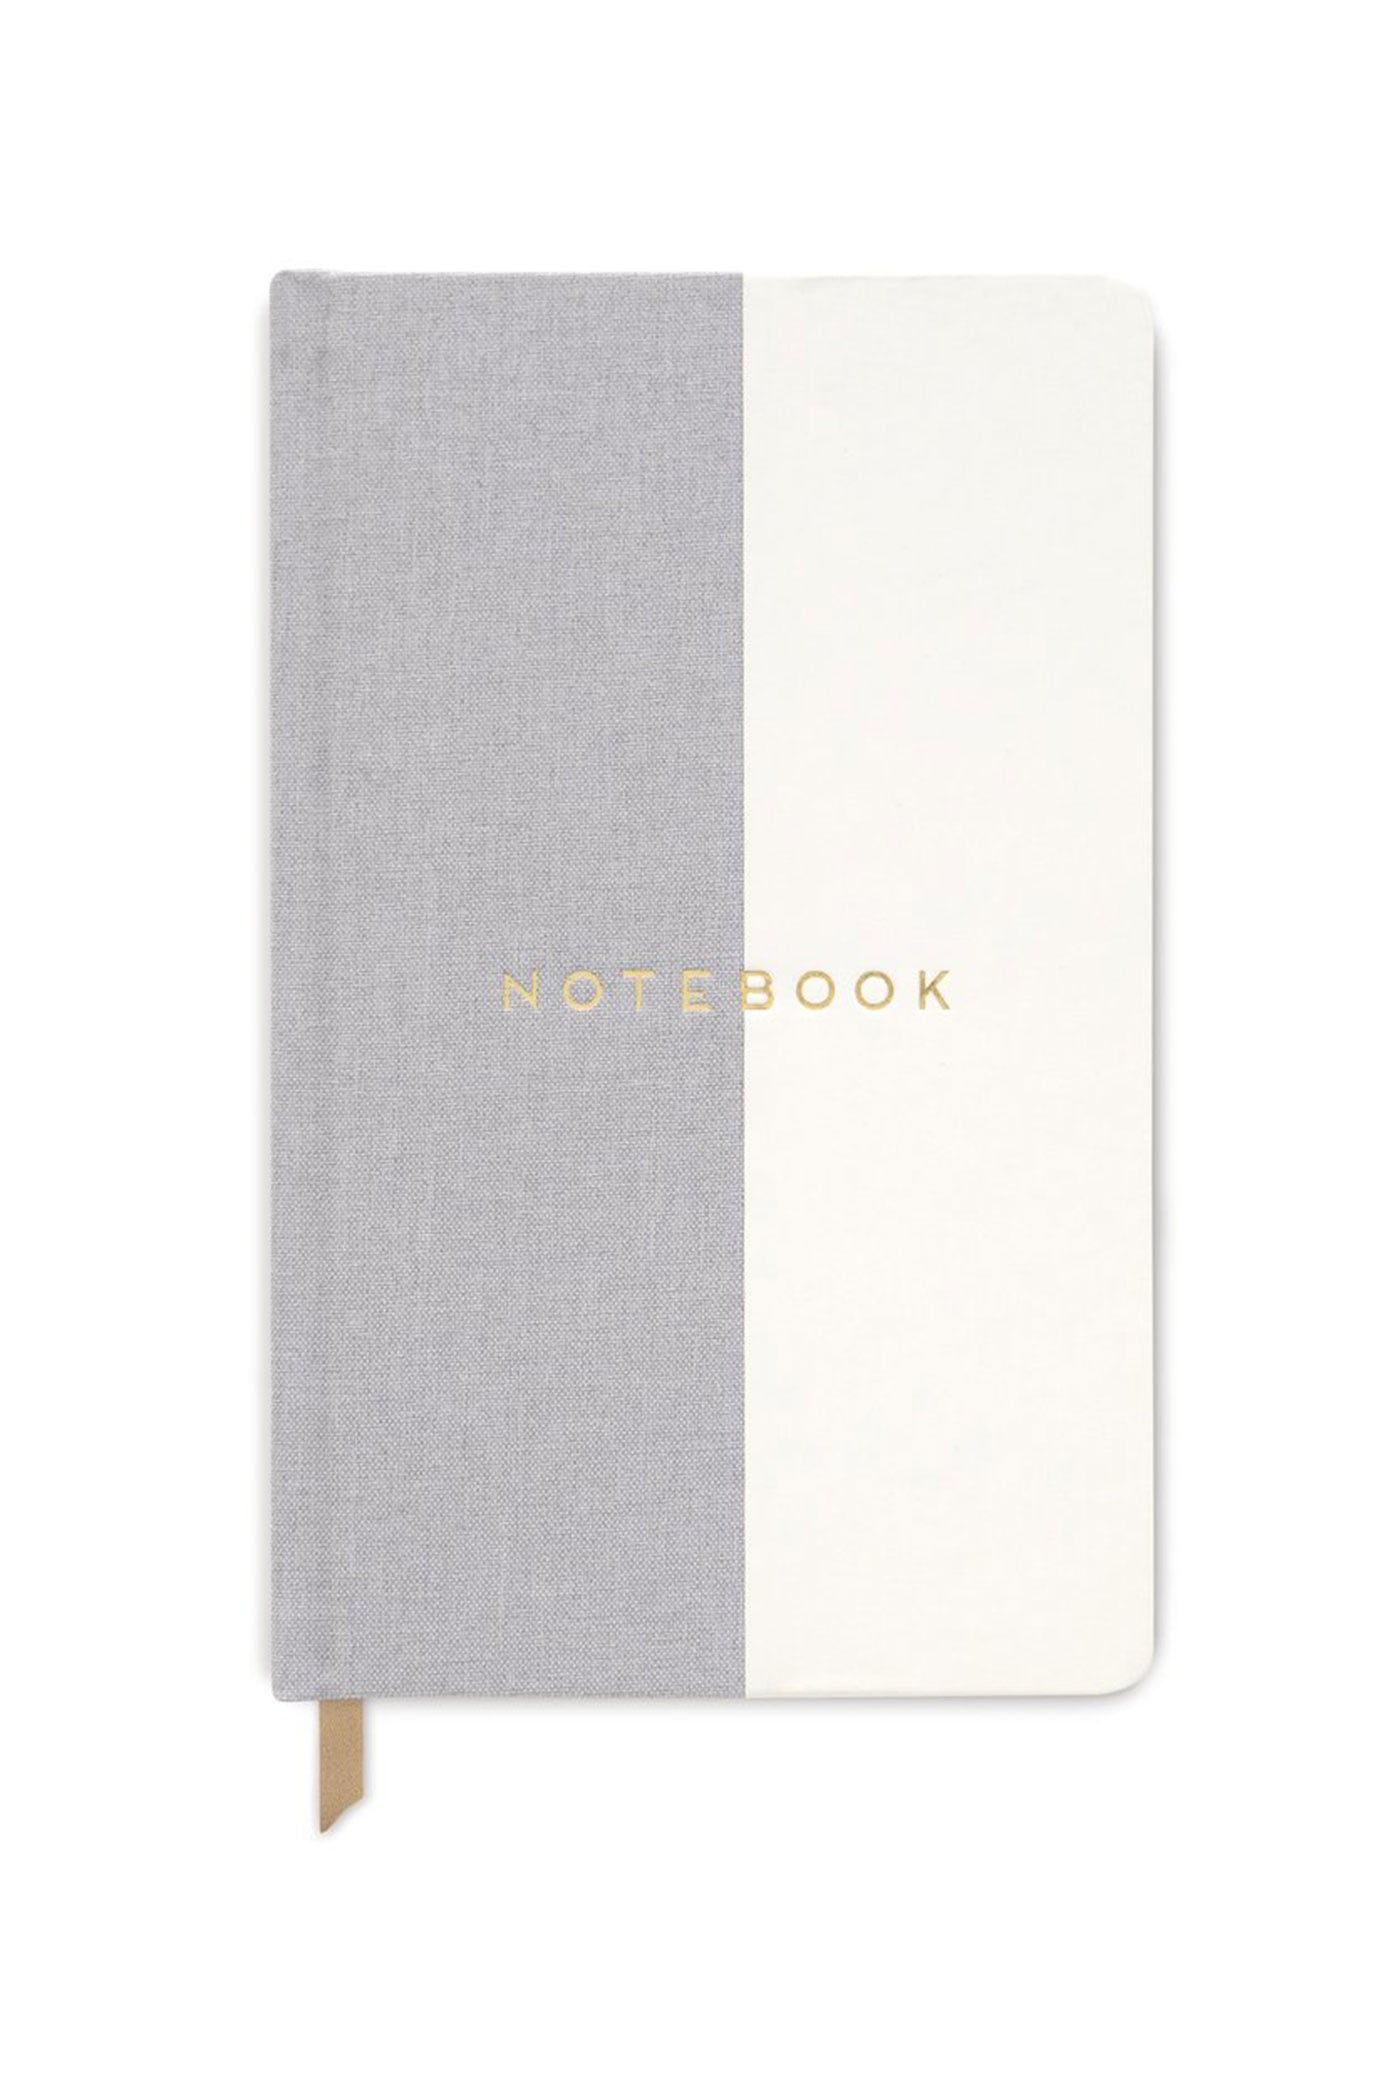 Grey Notebook by Design Works Ink